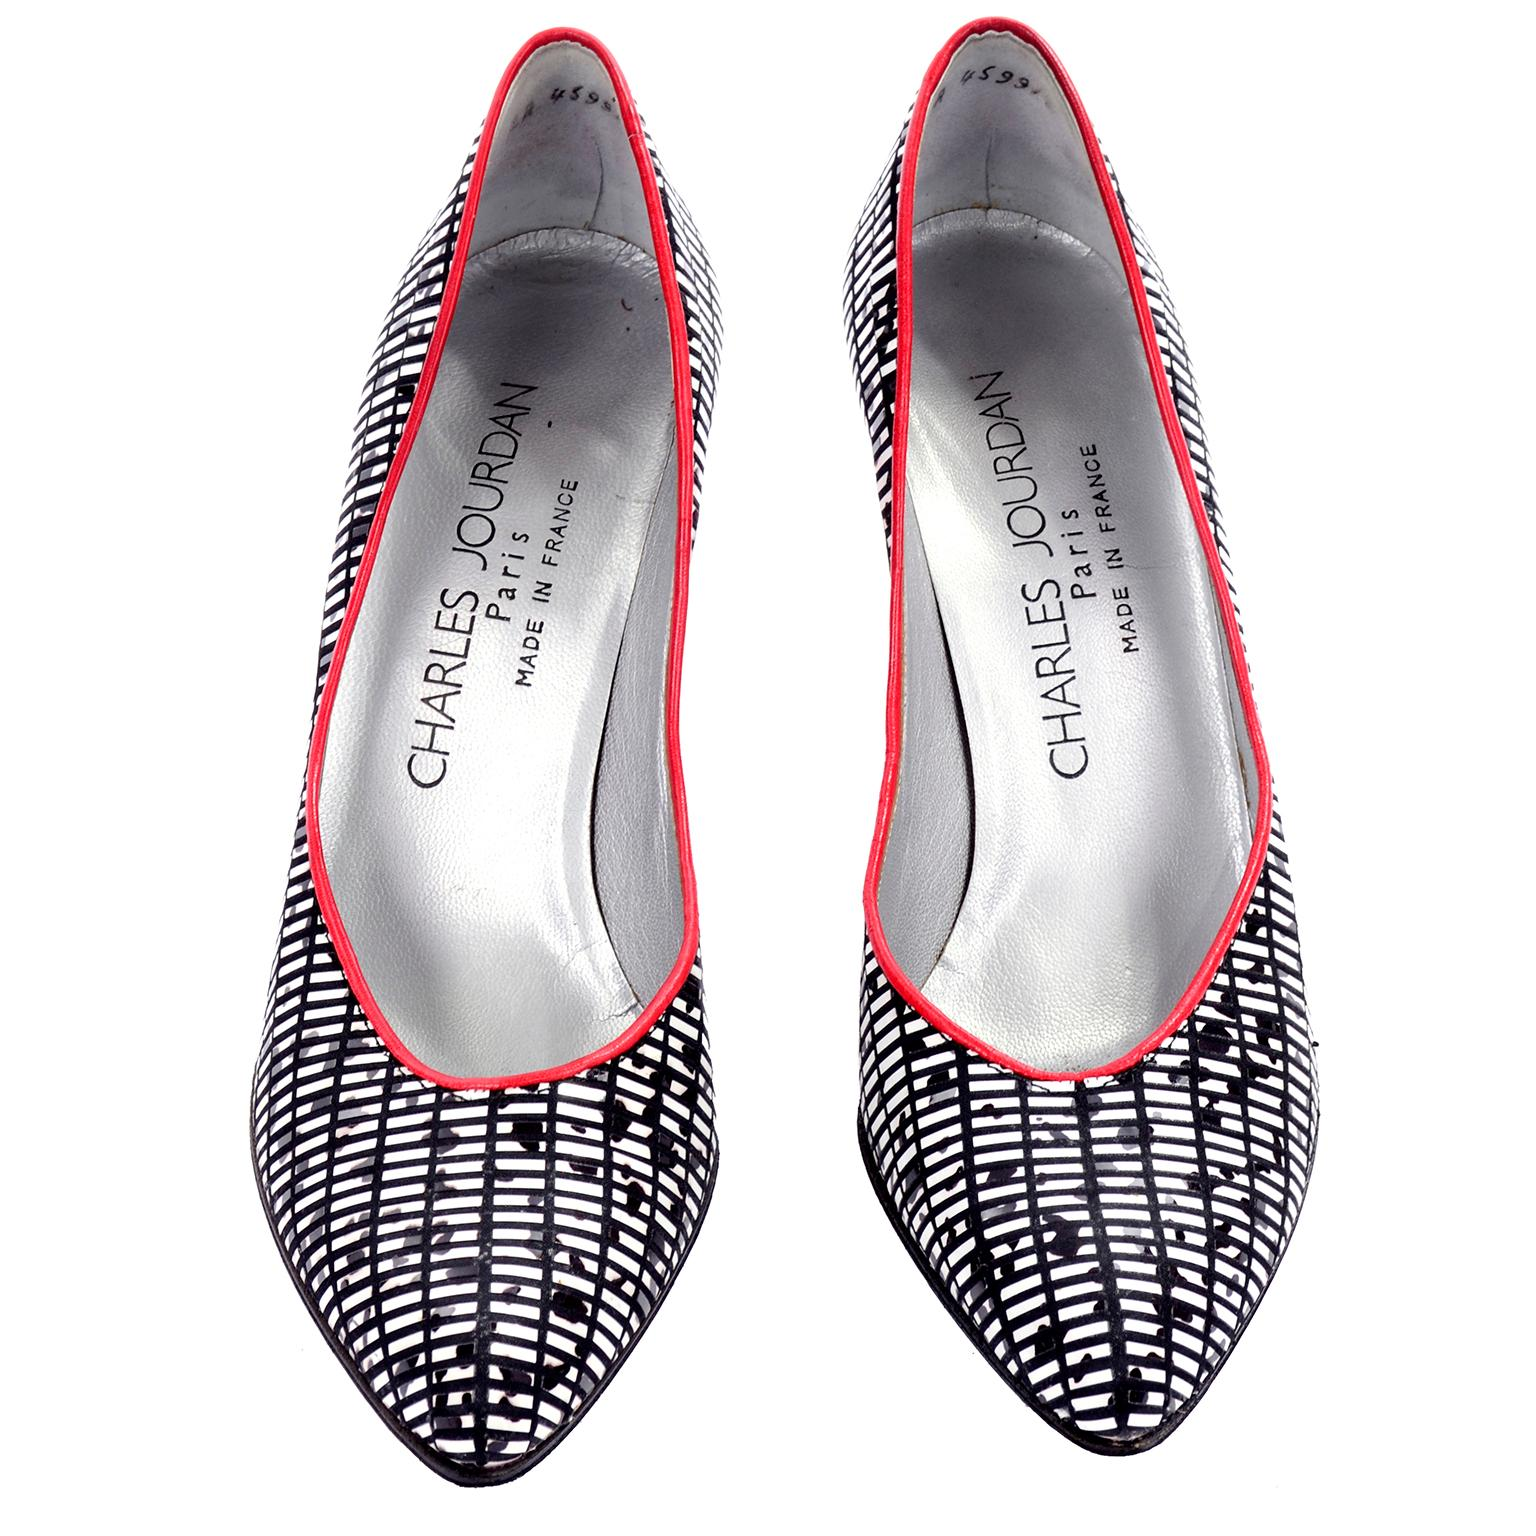 e0dd16ee46 Charles Jourdan Black and White Vintage Graphic Shoes WIth Red Heels 7N For  Sale at 1stdibs